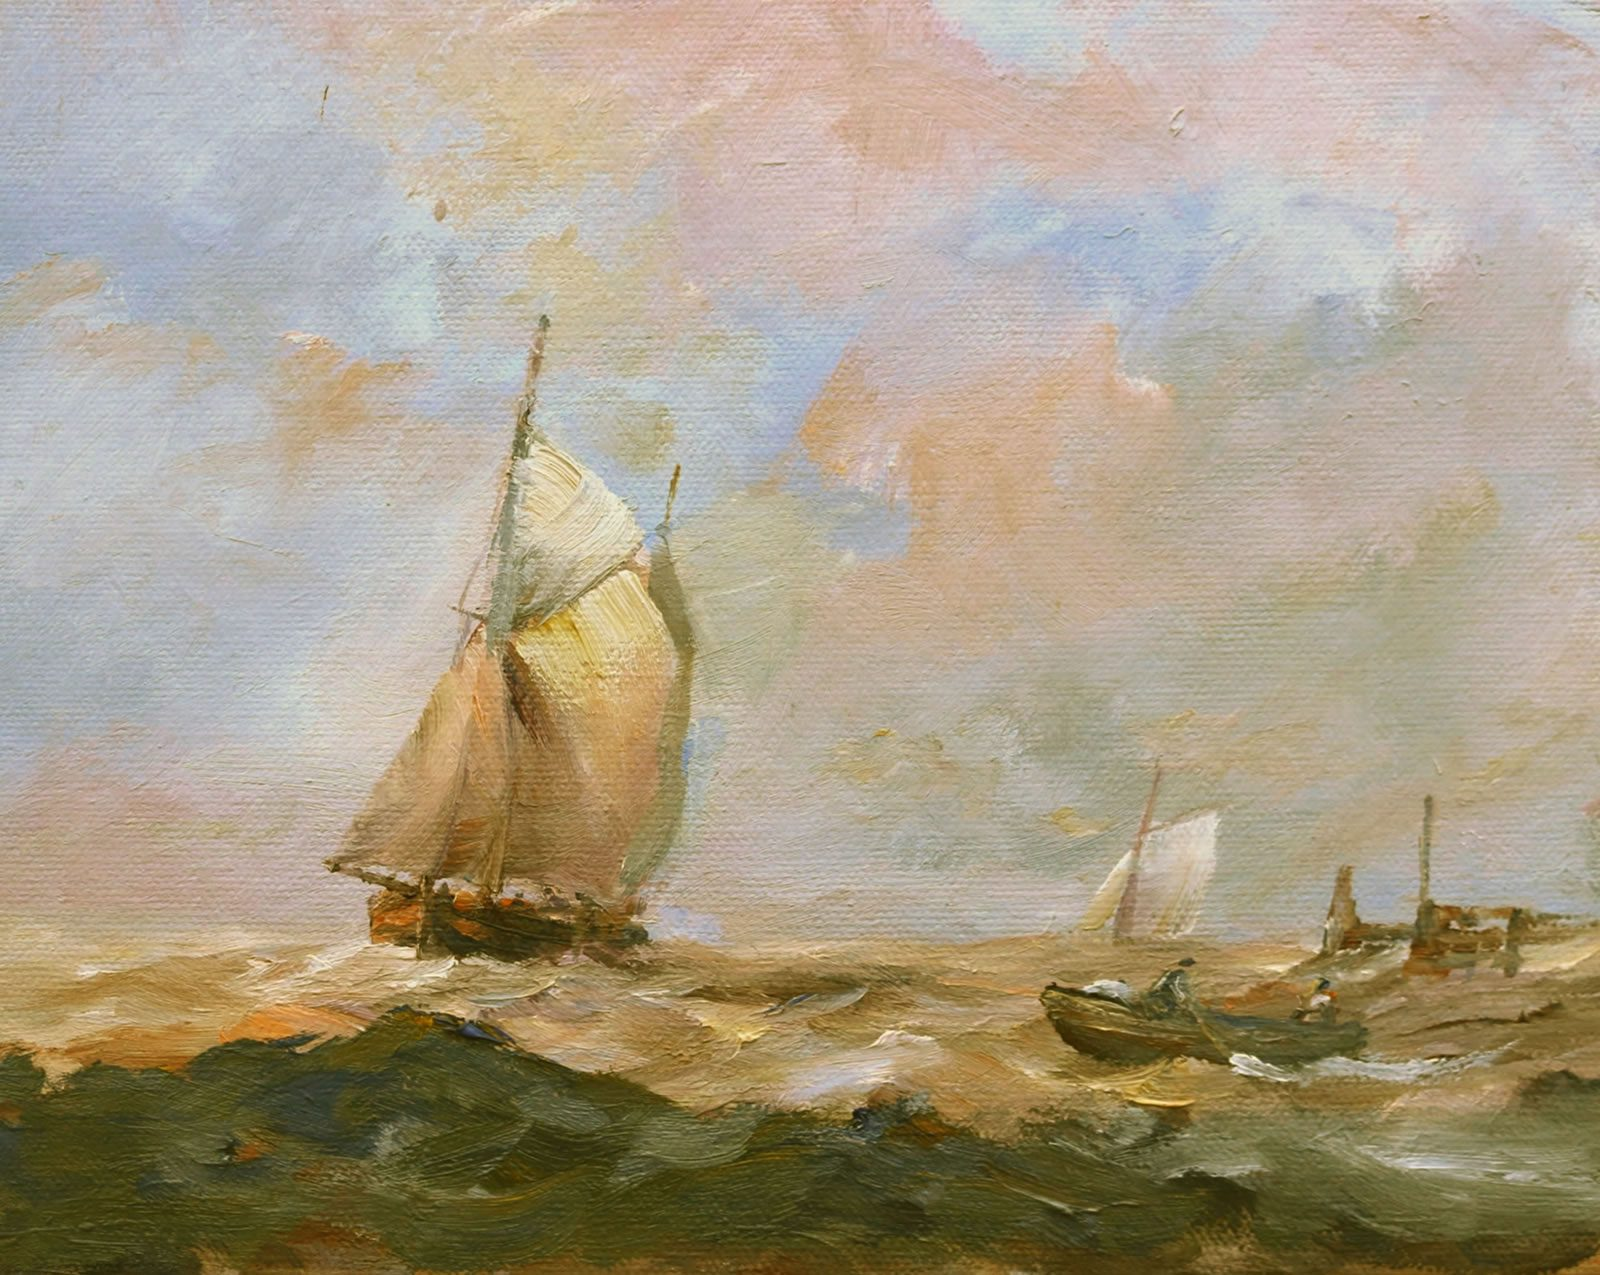 Romantic marine painting in oils by East Yorkshire artist Stewart Taylor